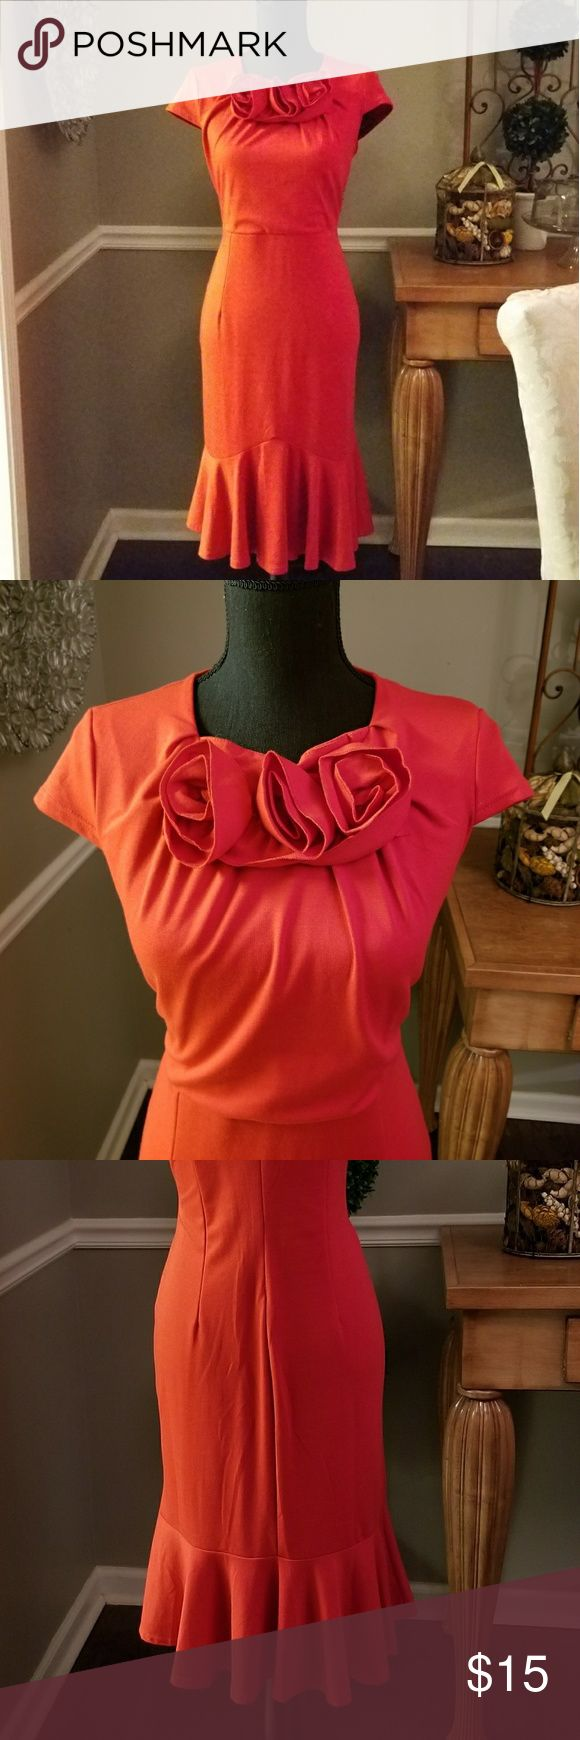 Little Red peplum Dress. Jersey knit, red peplum dress with jersey knit formed roses at the collar. This dress runs very small. True size is 9/10 11/12. Korean Dresses Midi